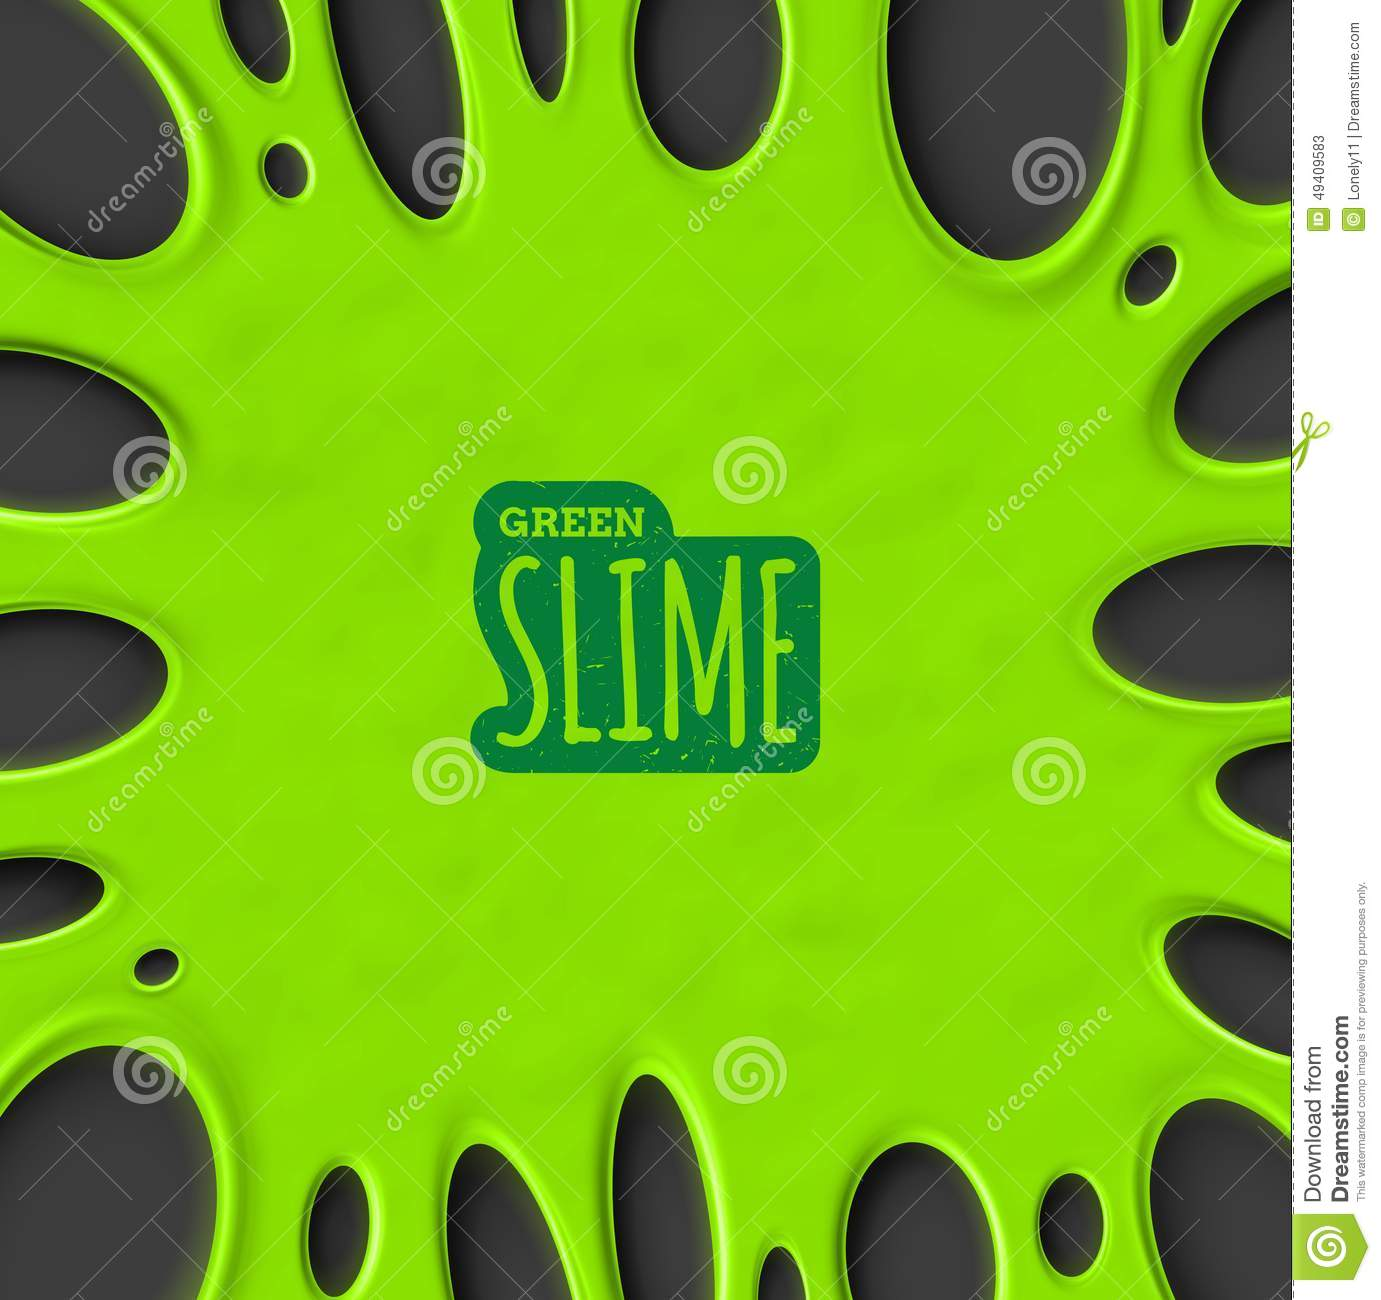 Green Slime Stock Vector - Image: 49409583